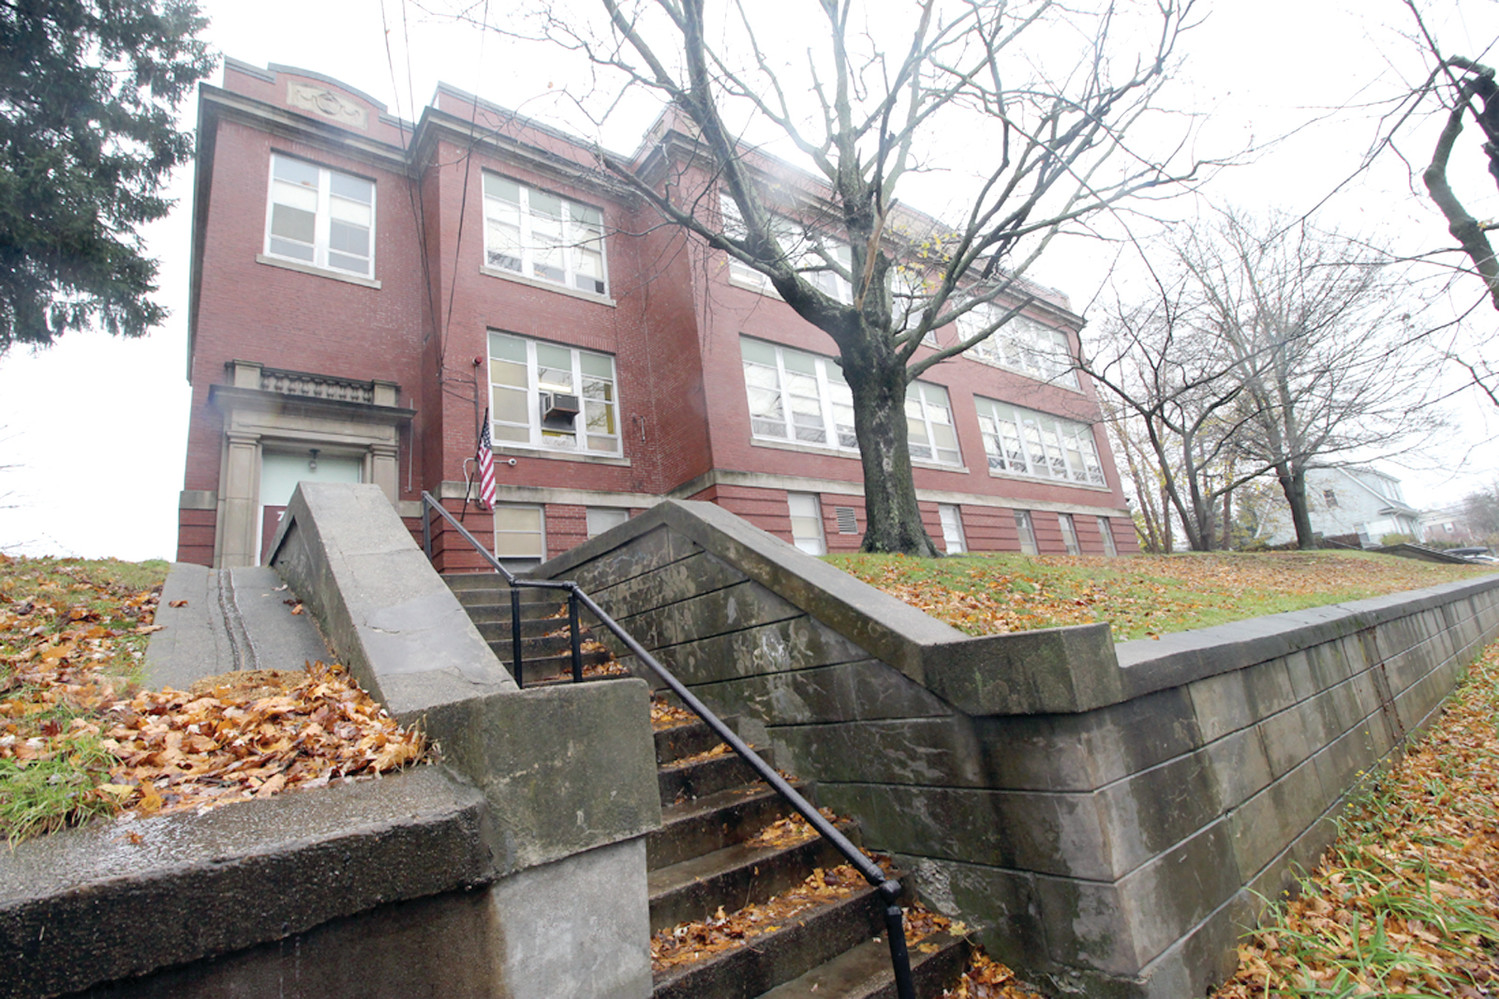 RECOMMENDED FOR CLOSURE: The future of Chester Barrows School in Edgewood was among issues to be discussed Wednesday at a joint meeting of the City Council and School Committee.